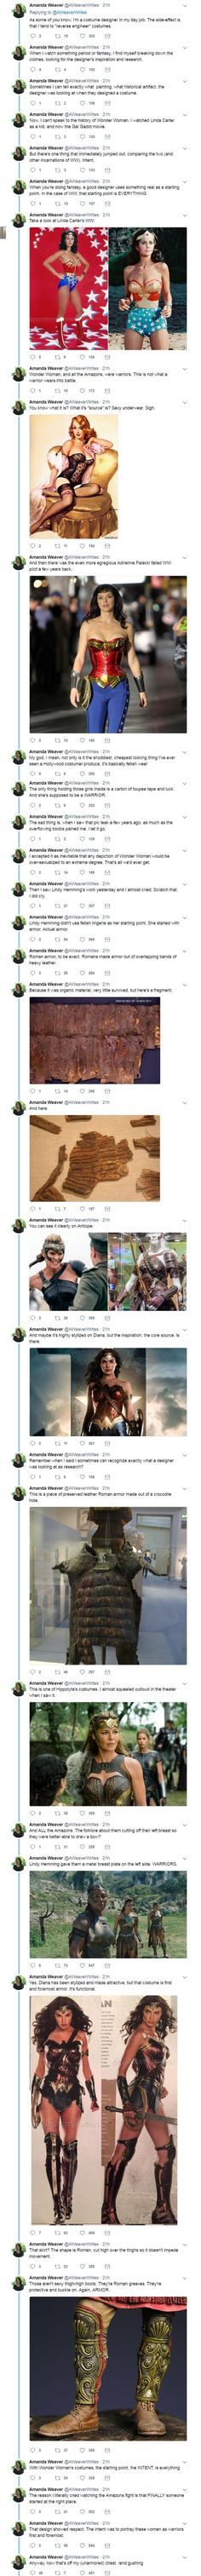 The costumes in Wonder Woman—thoughts from a costume designer